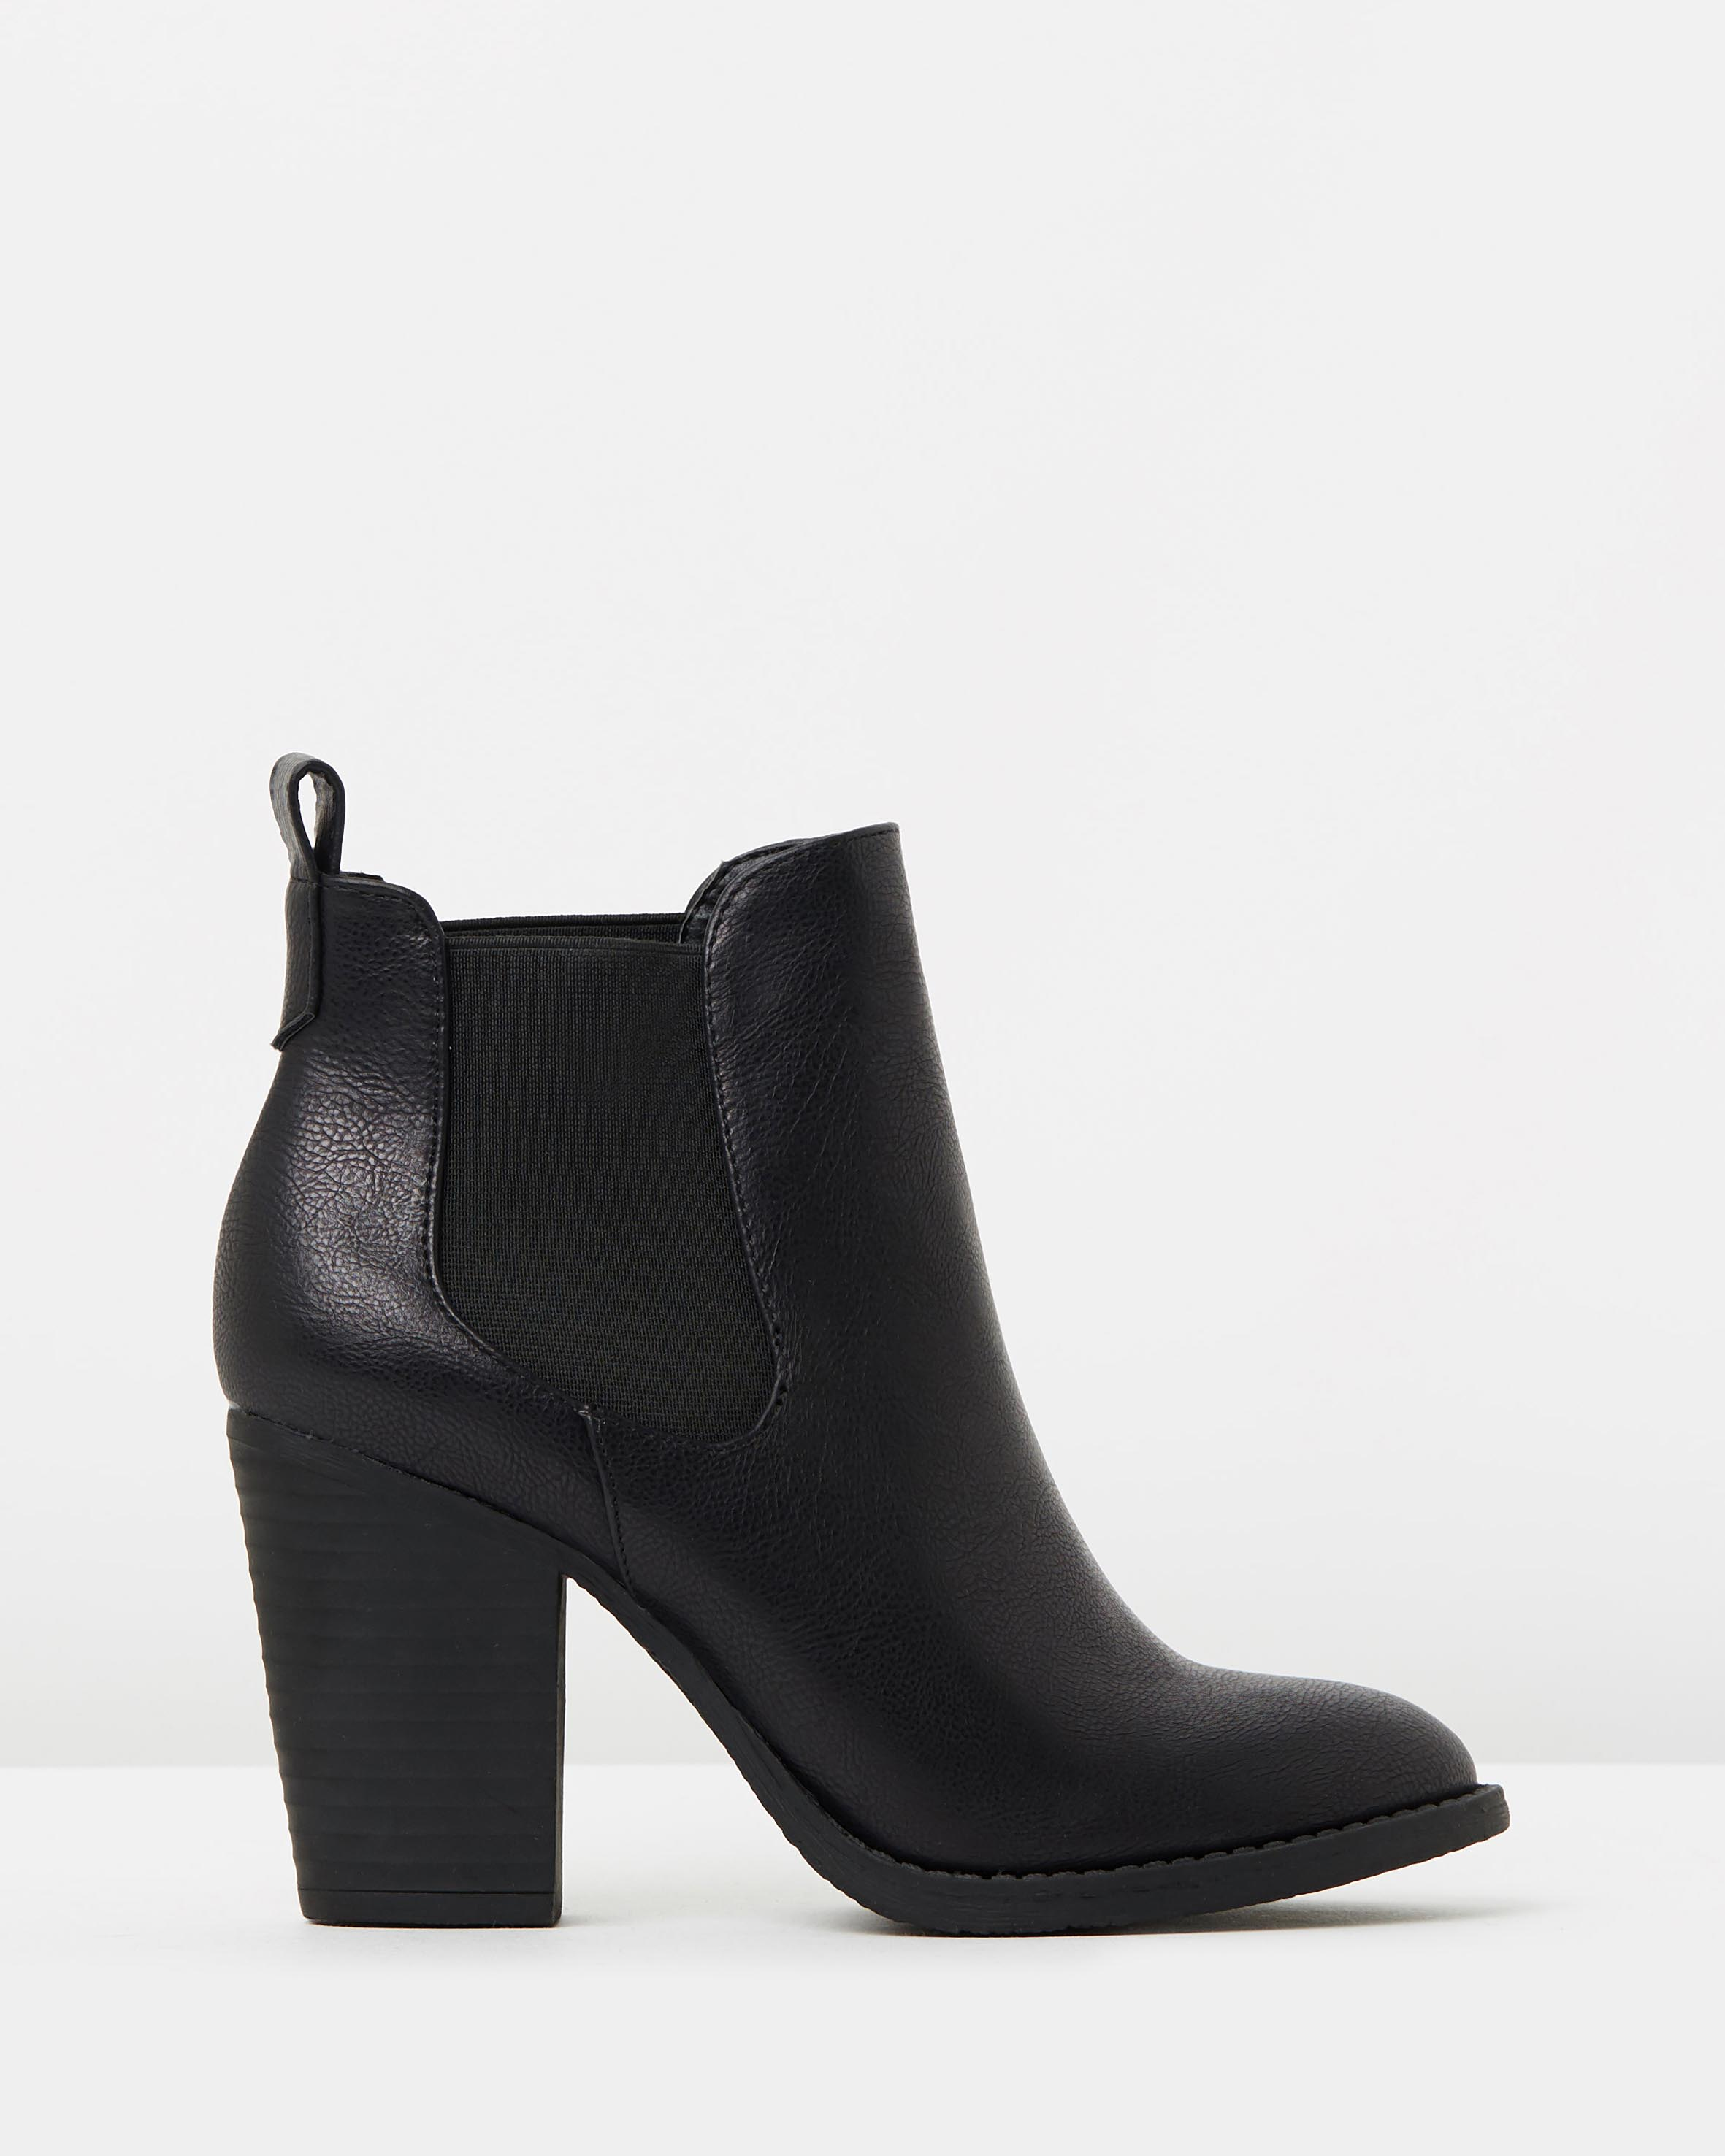 Cheap Womens Boots Online KWGoqIgm